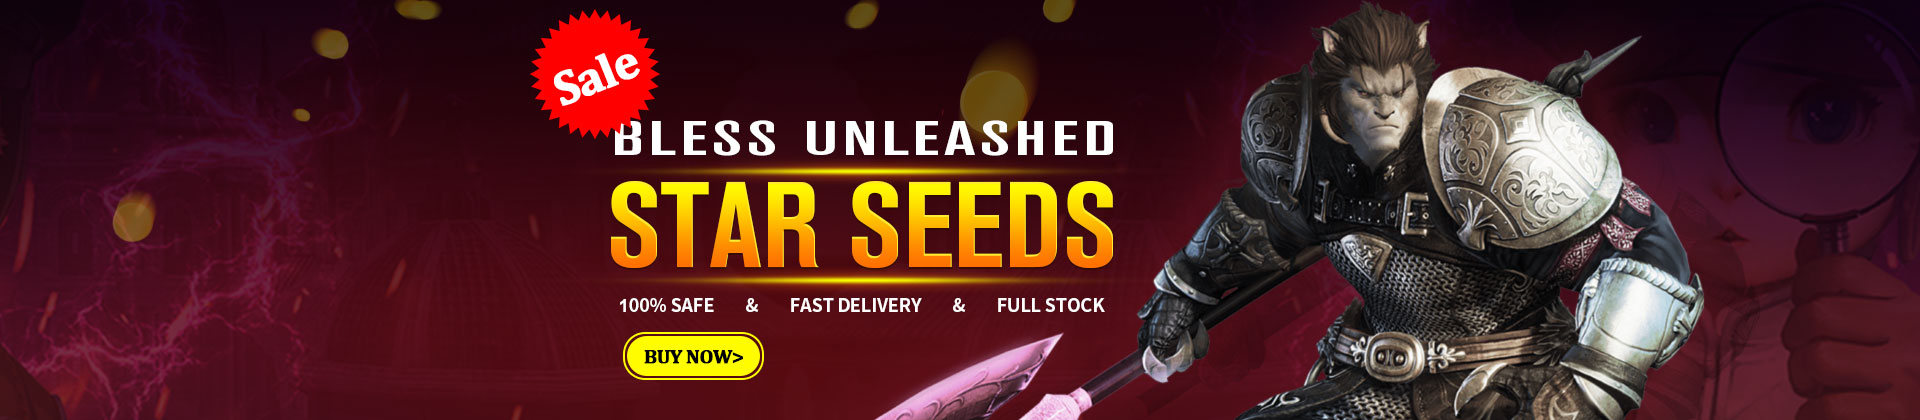 Buy Bless Unleashed Star Seeds